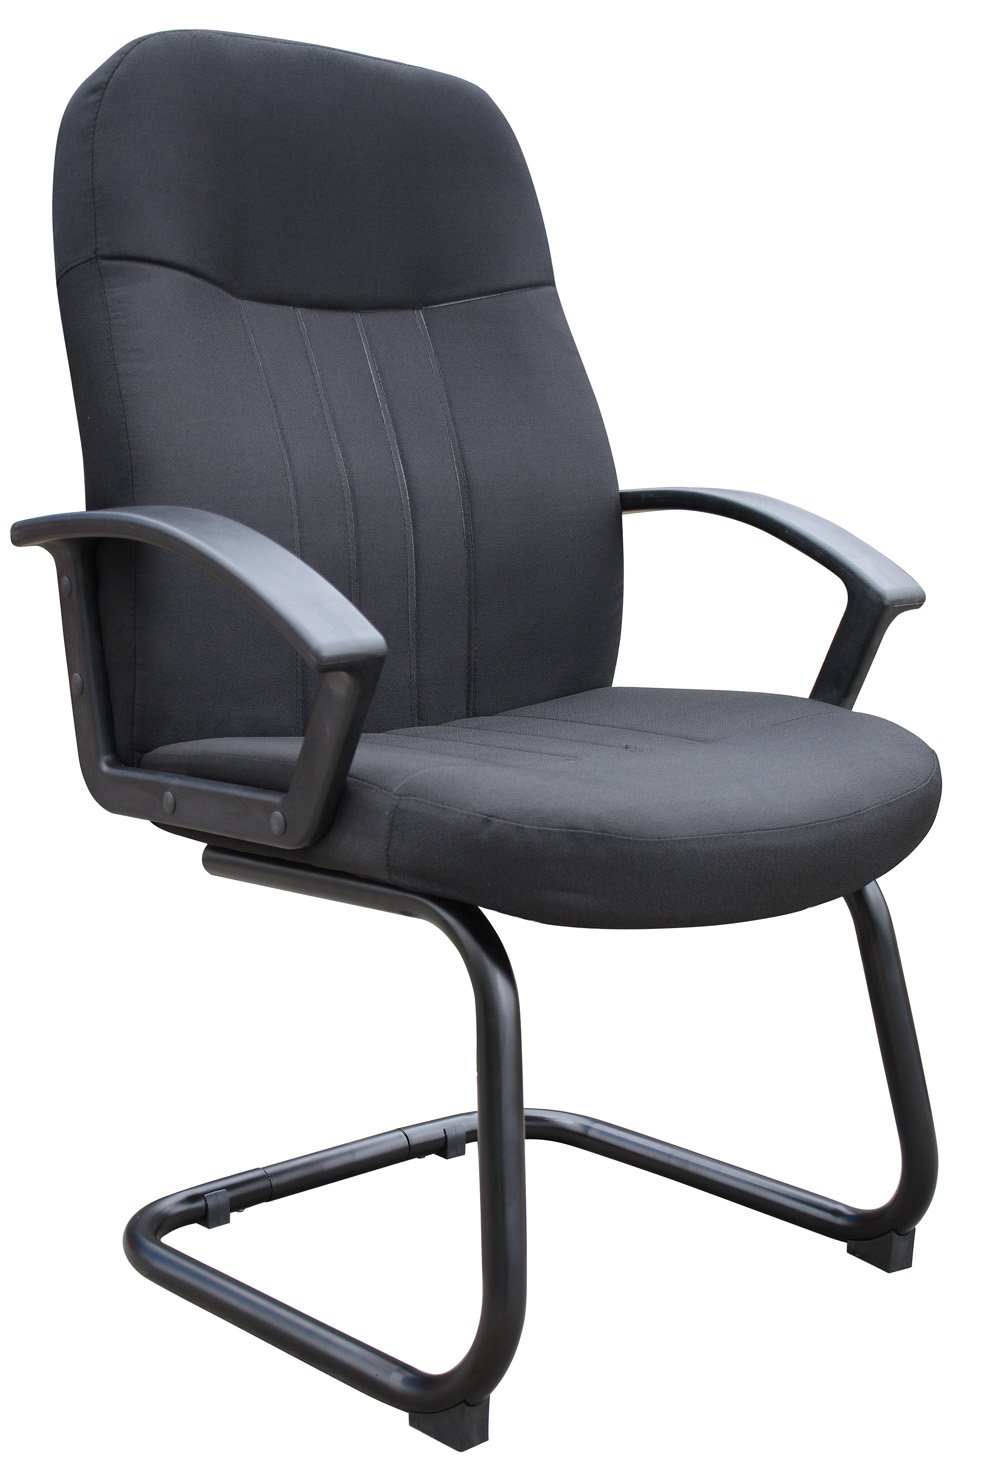 Boss Office Products B8309-BK Mid Back Fabric Guest Chair in Black